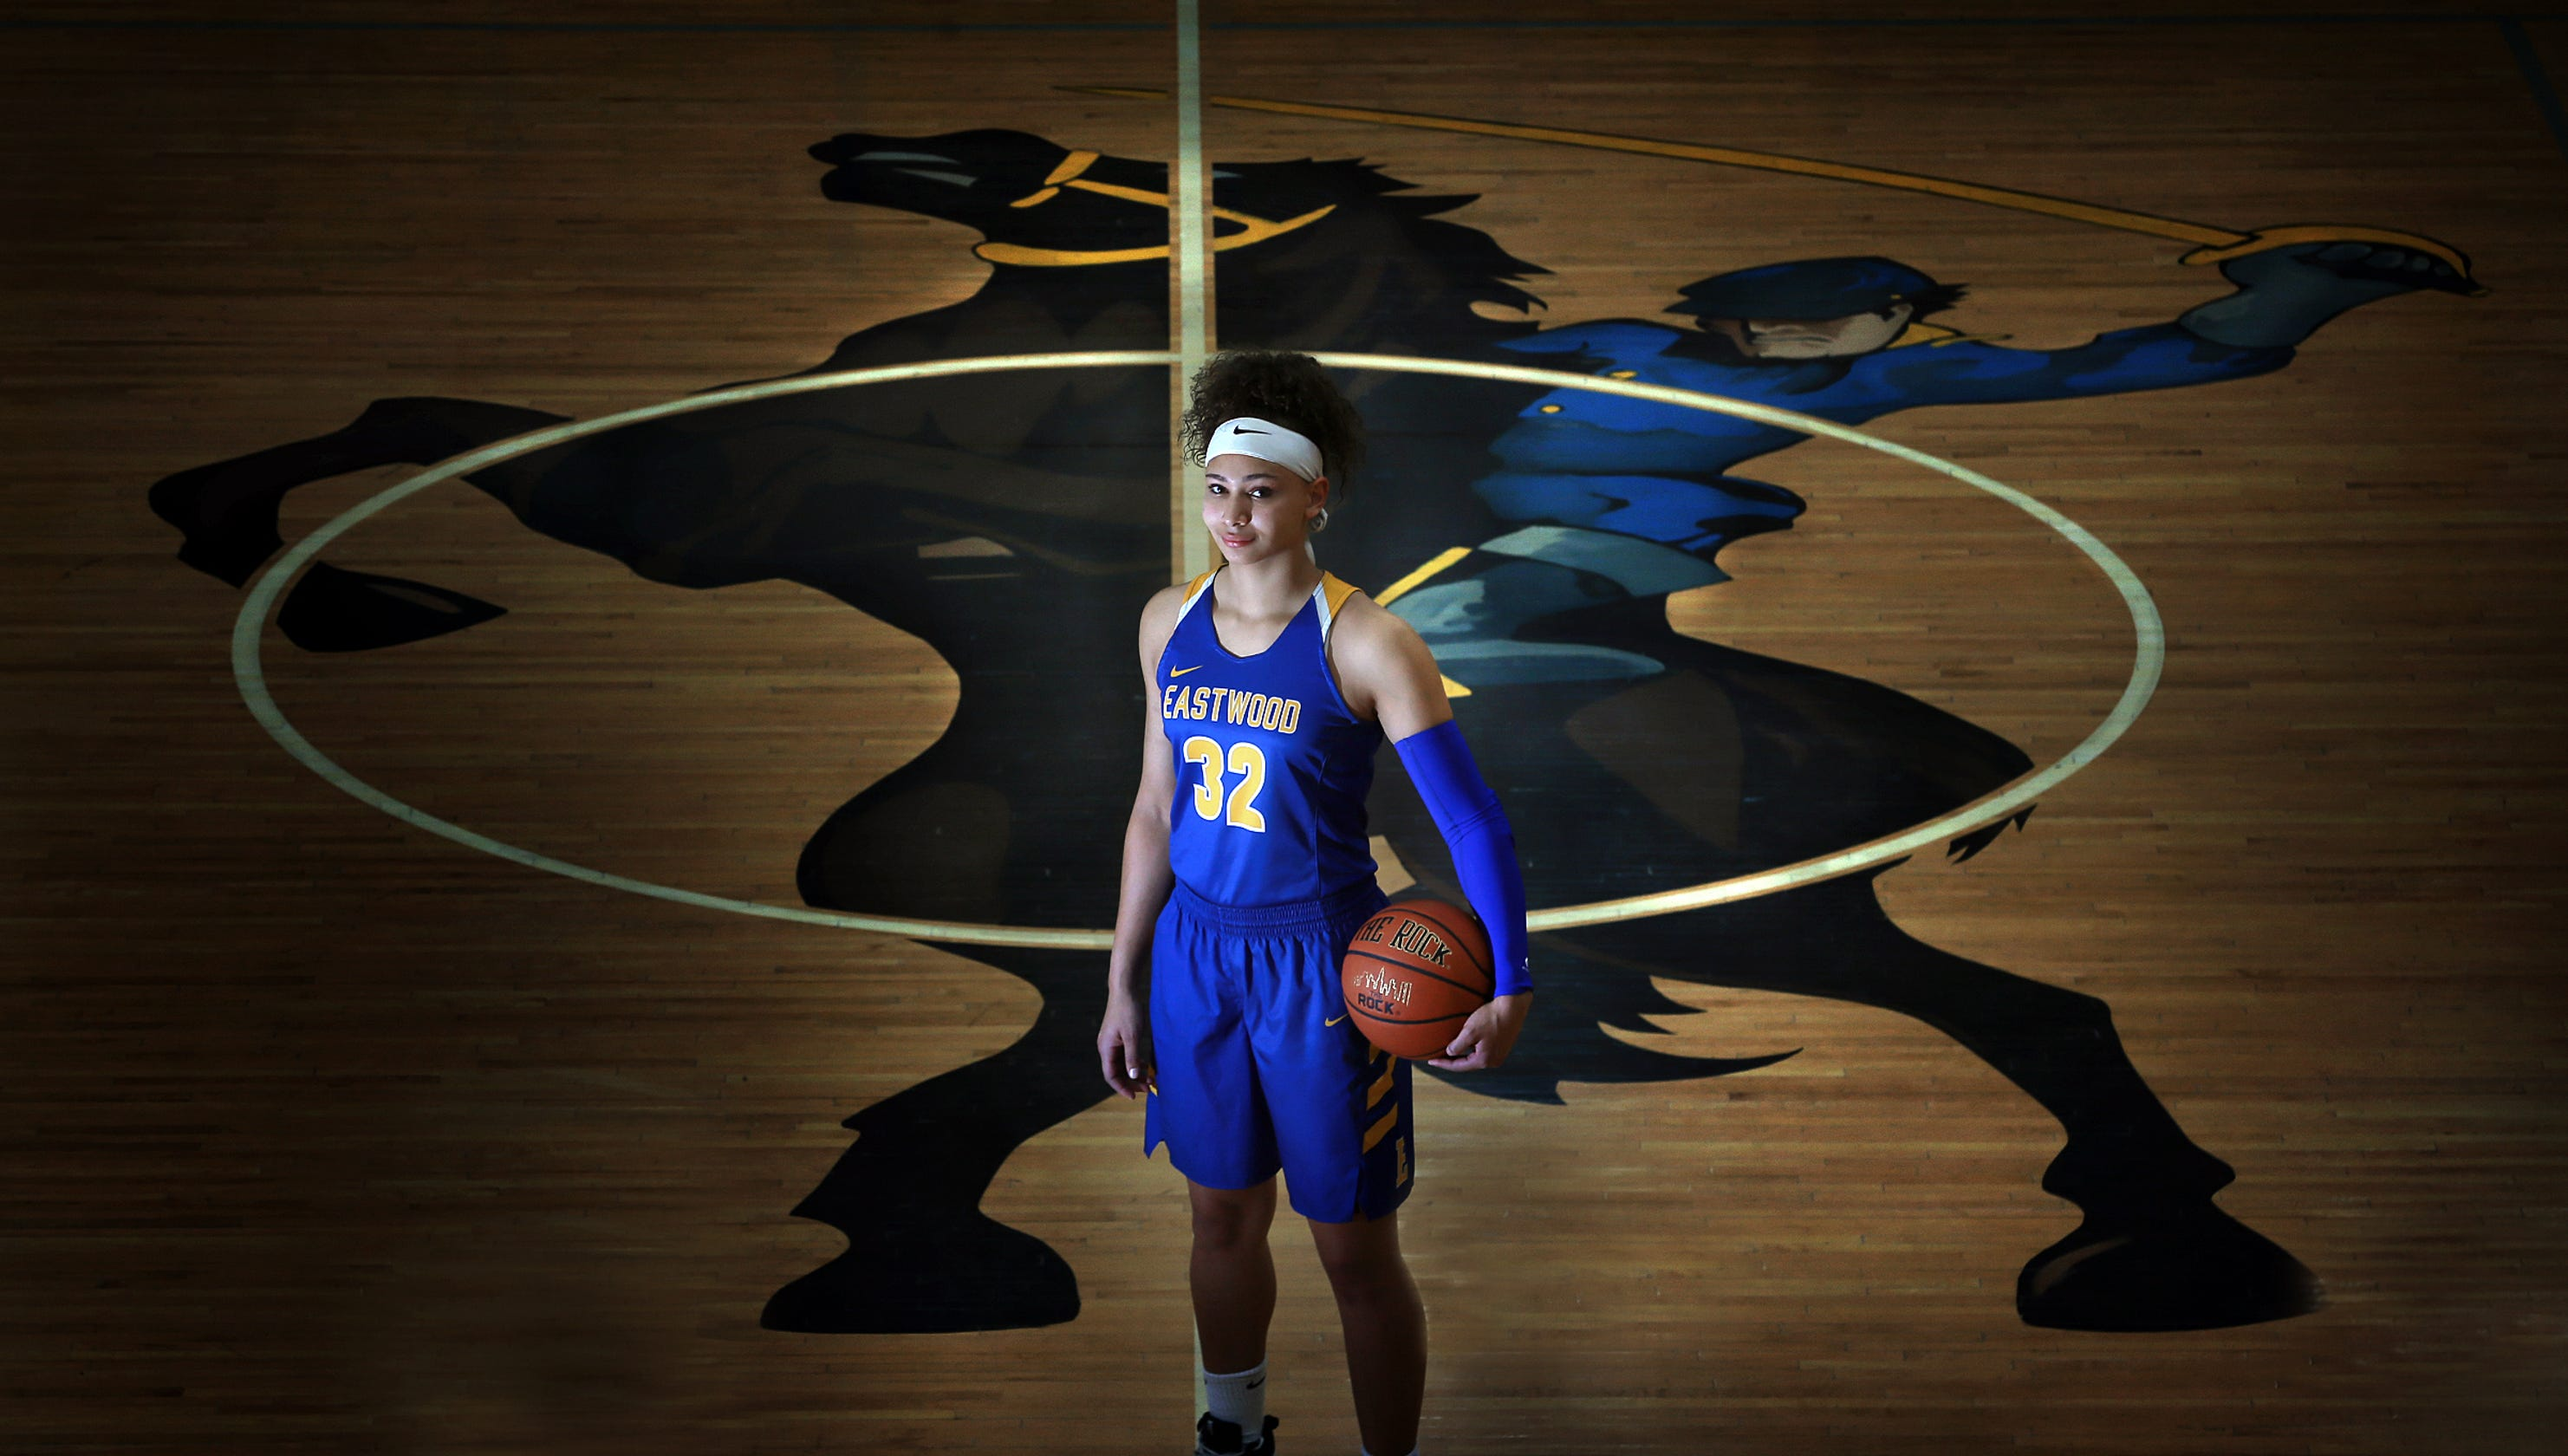 eastwood s kayleigh walton stays positive in tough family situation